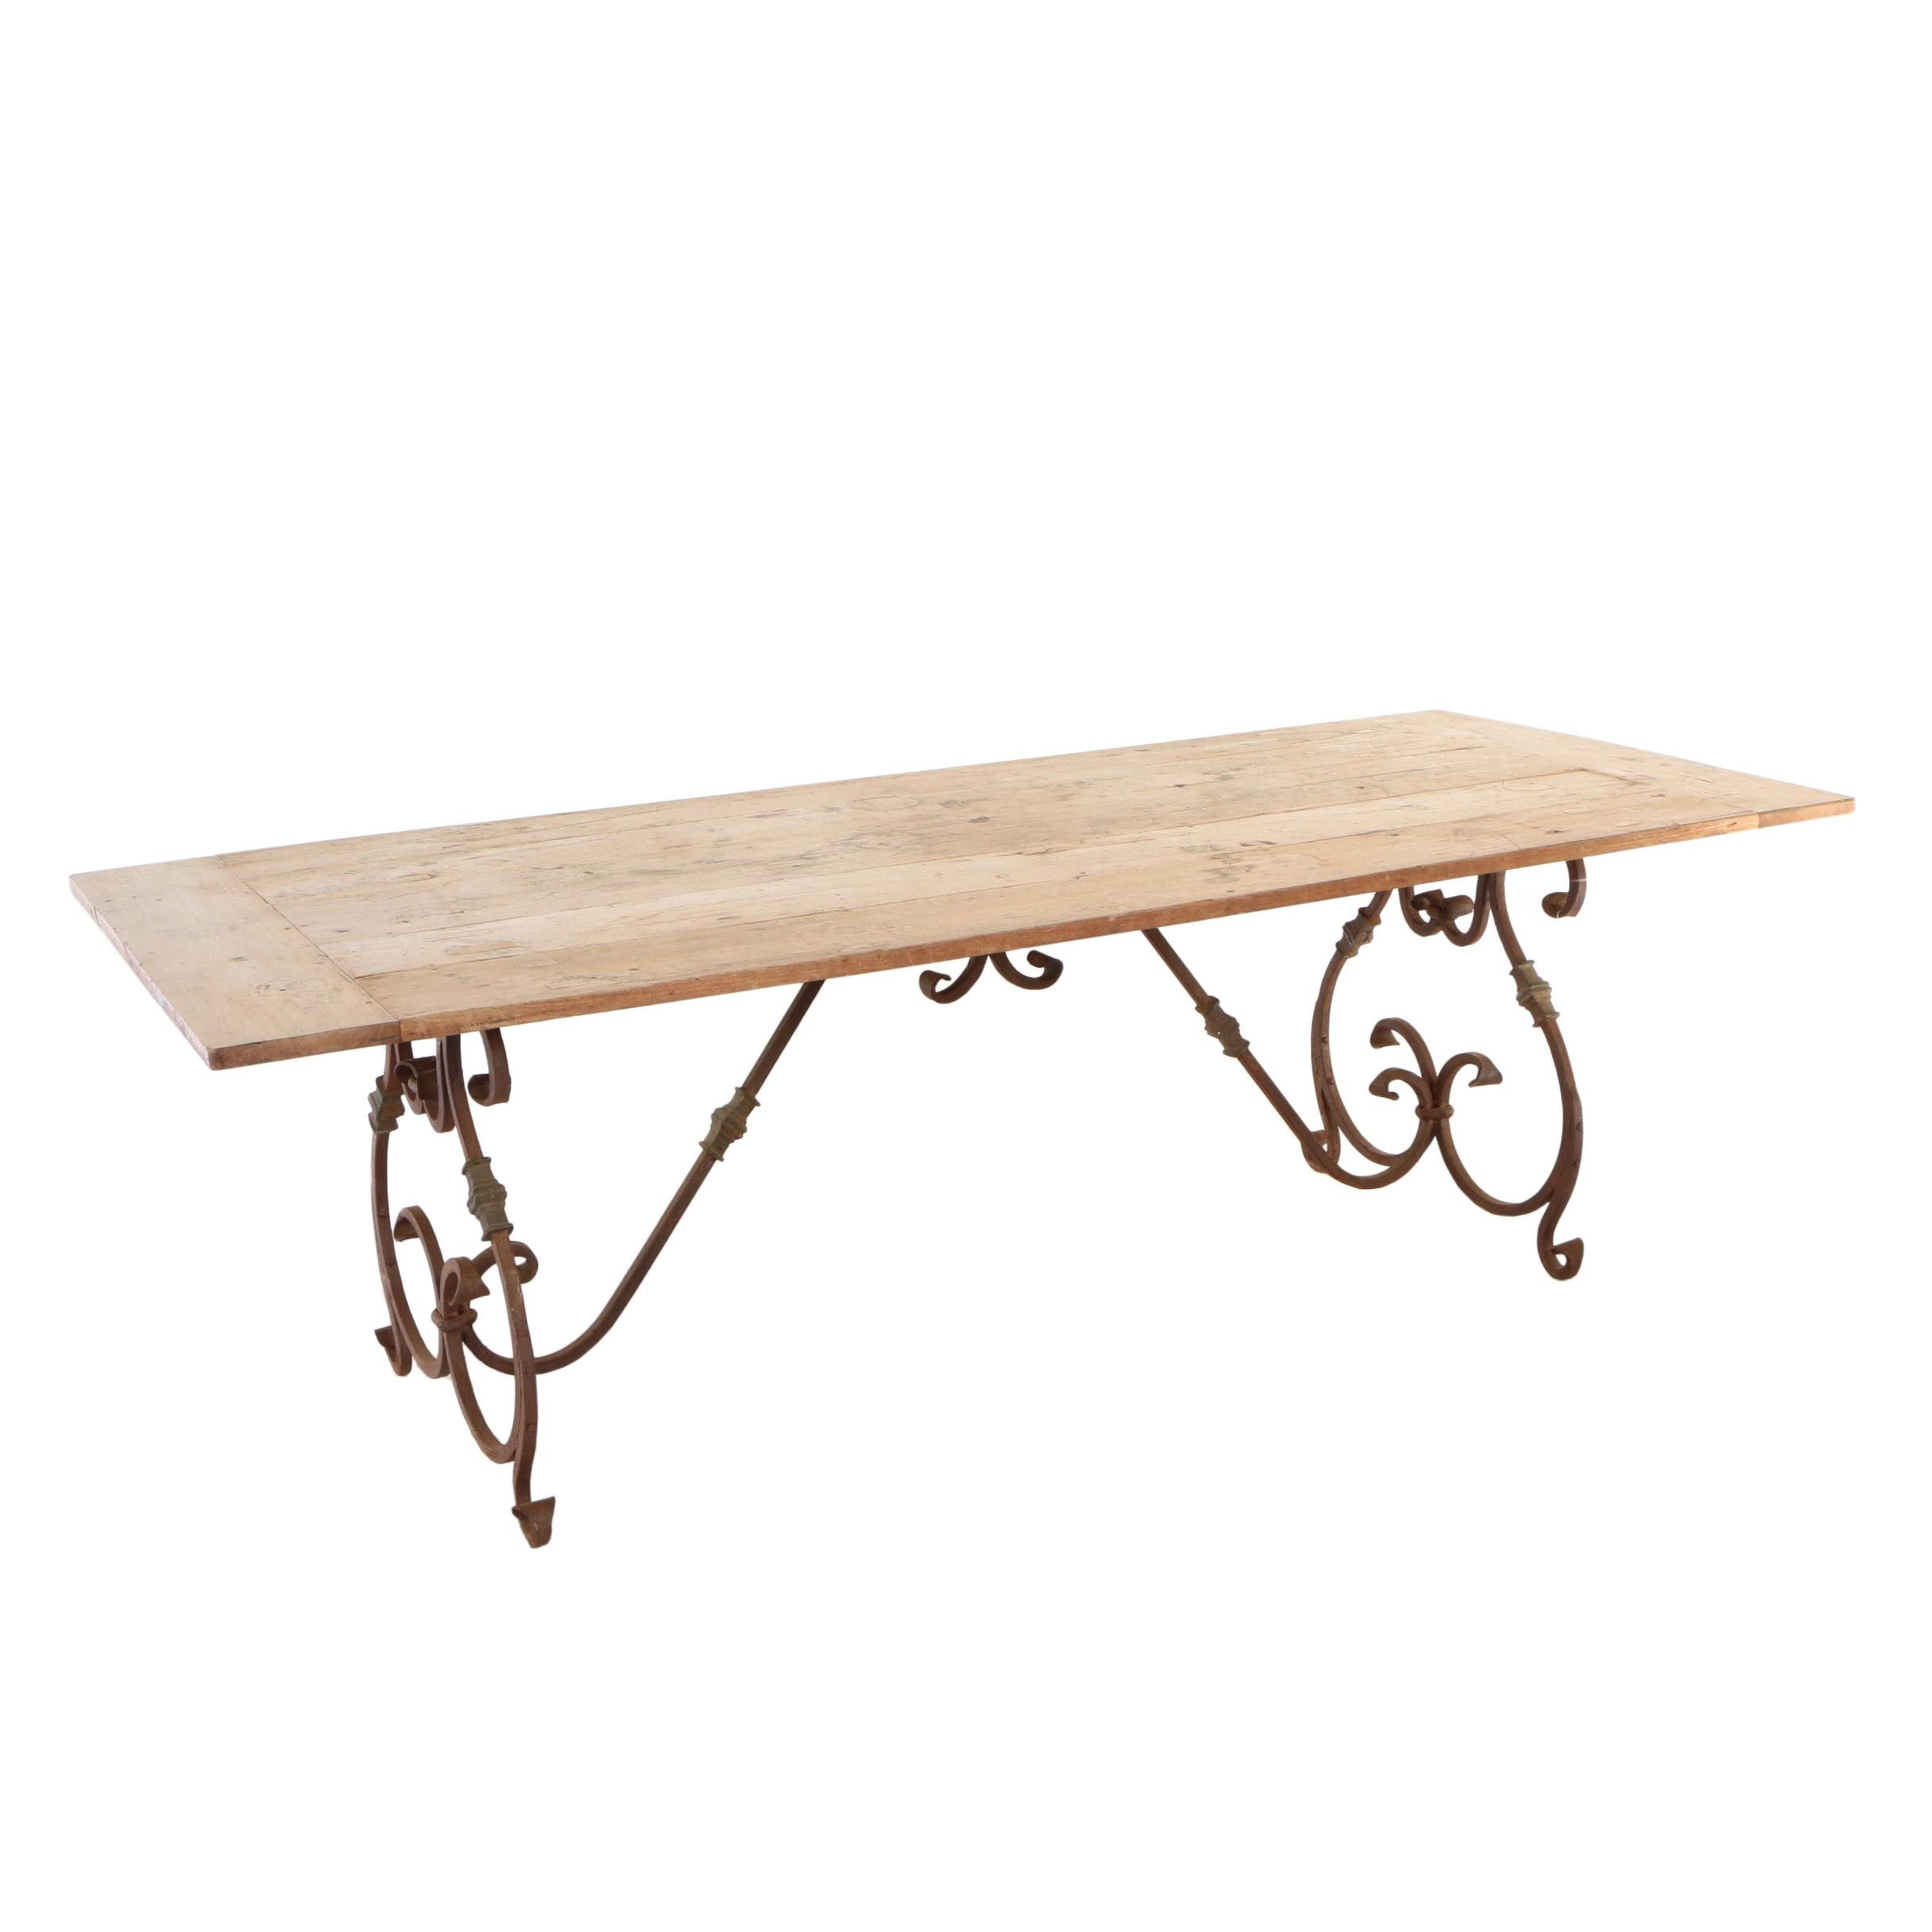 Baroque Style Iron and Teak Dining Table, 20th Century